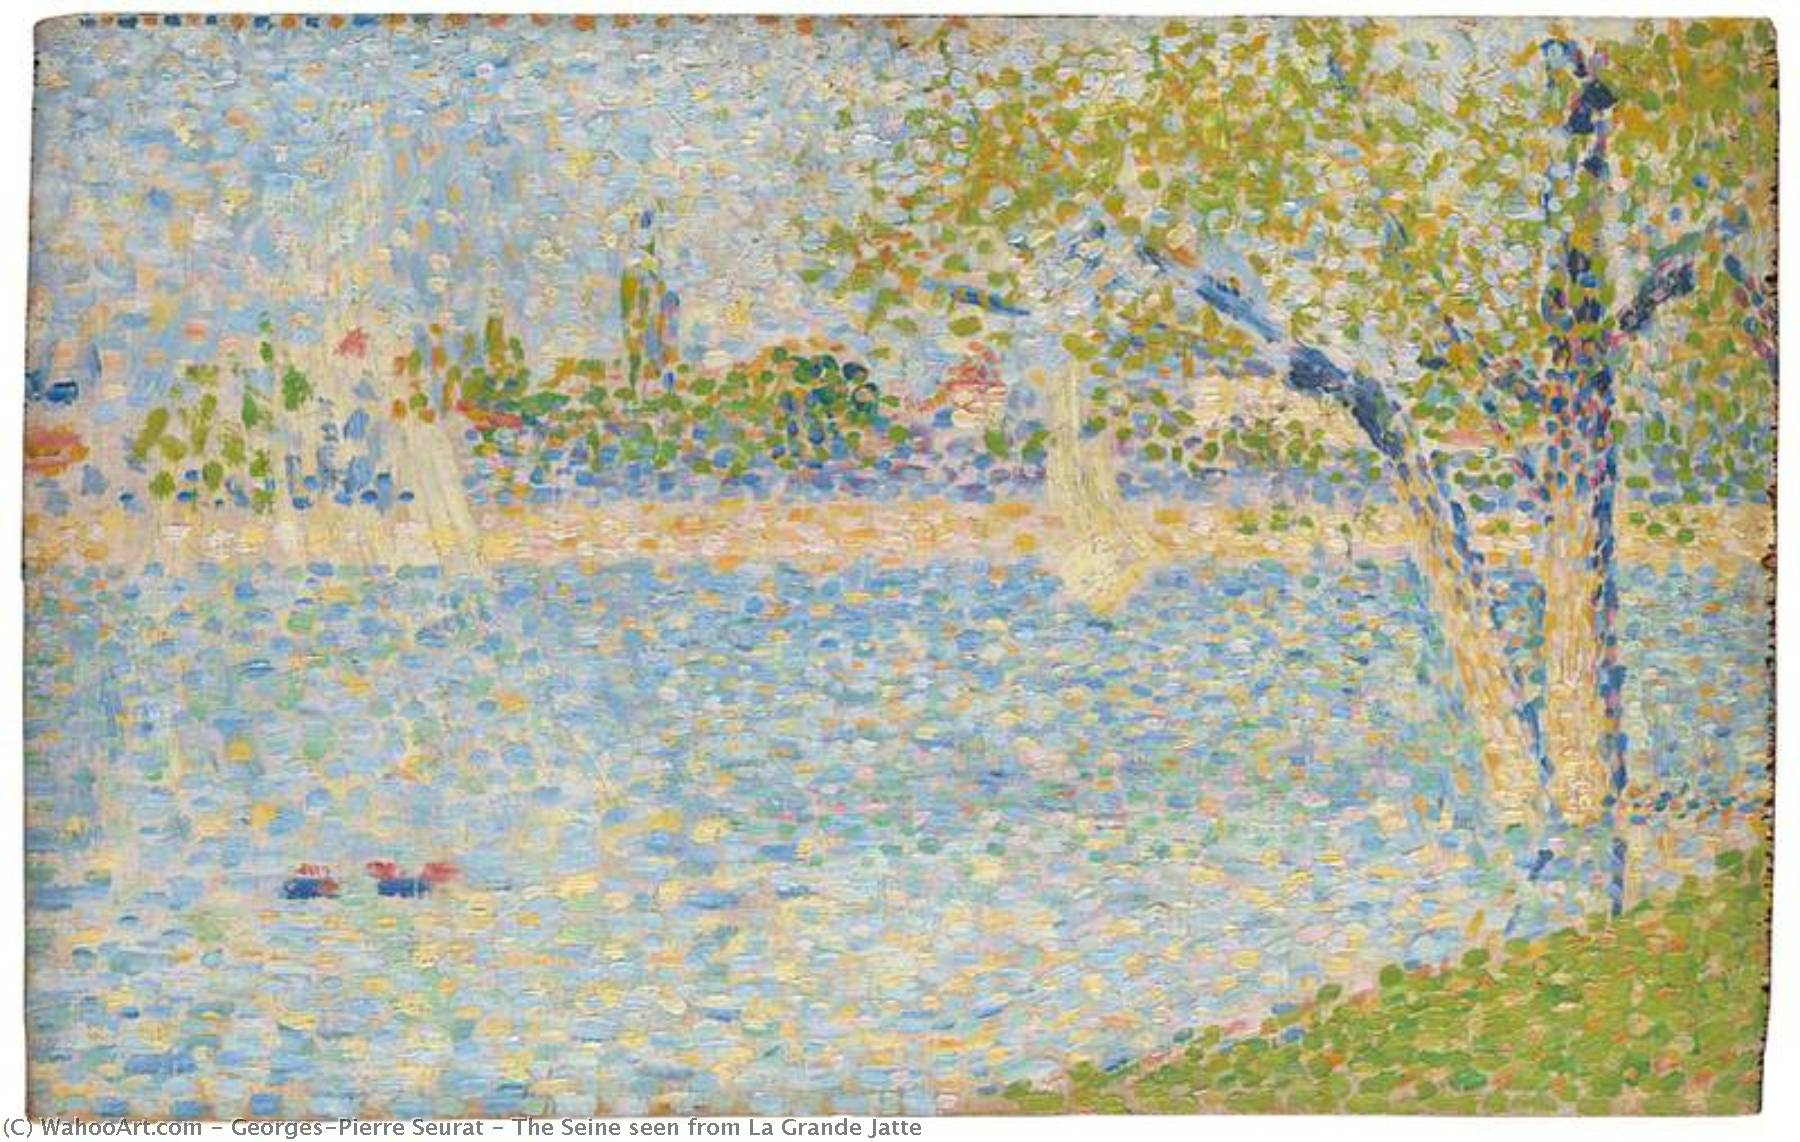 famous painting The Seine seen from La Grande Jatte of Georges Pierre Seurat